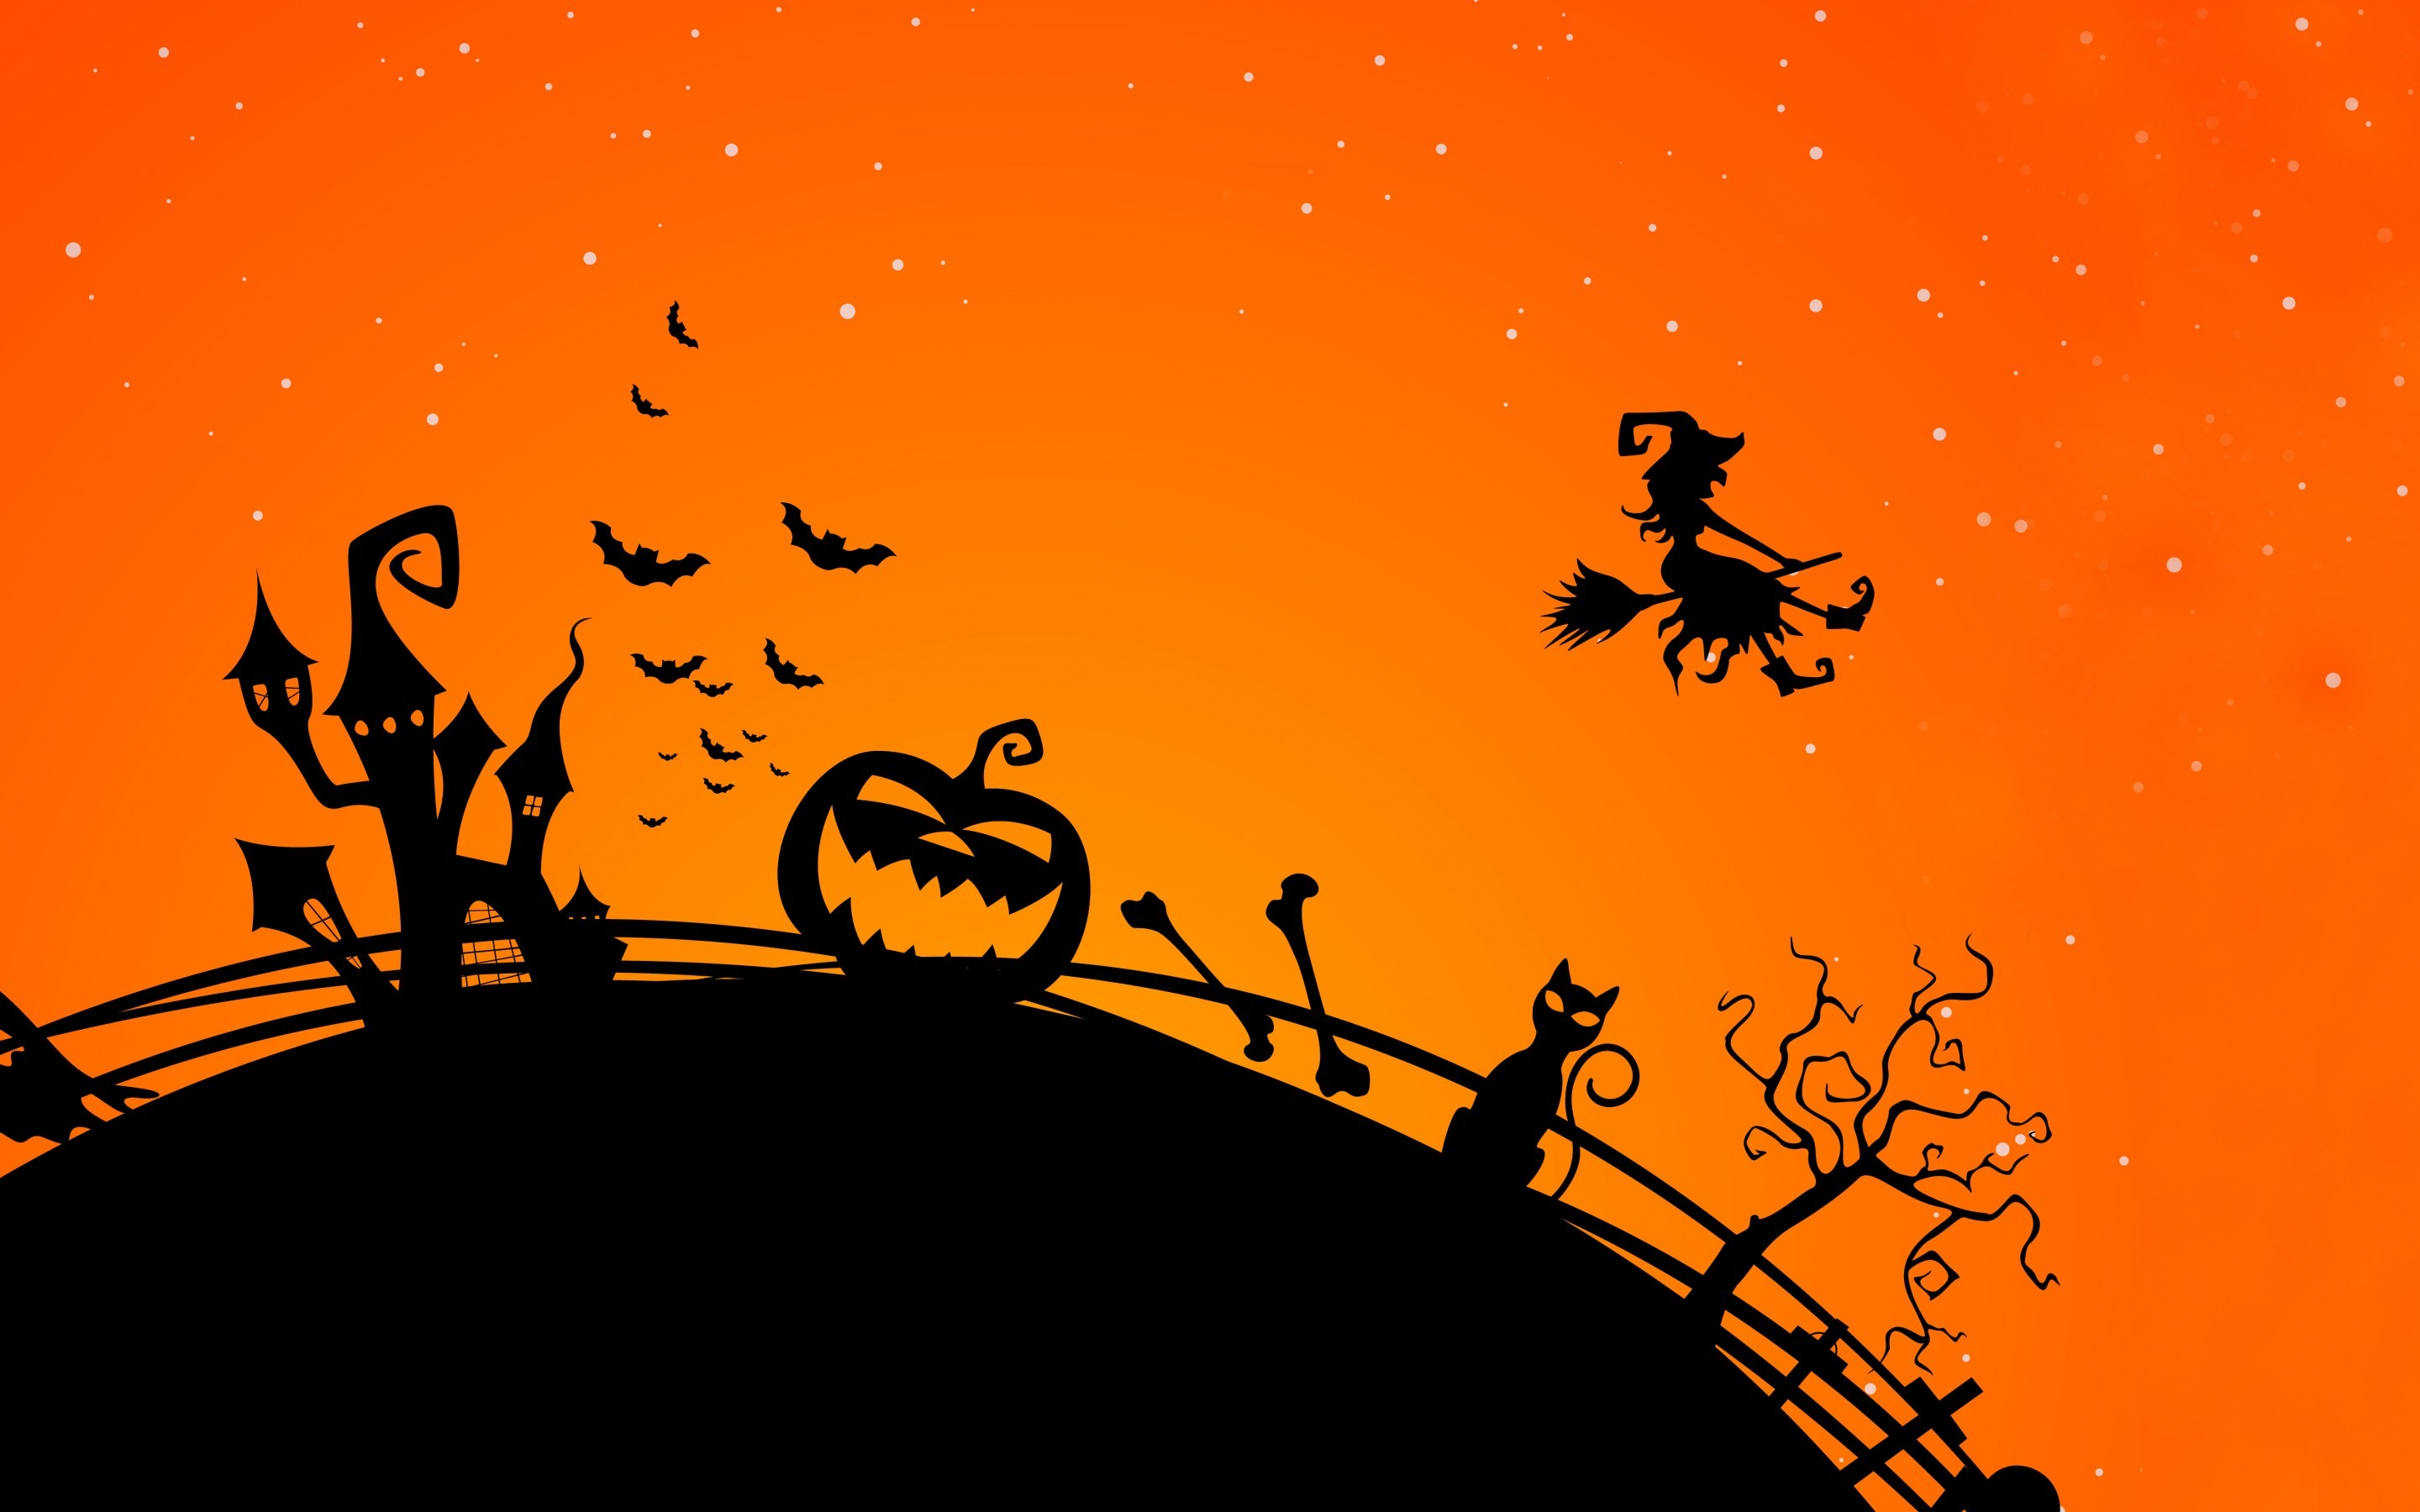 2880x1800 Halloween wallpaper HD desktop download.